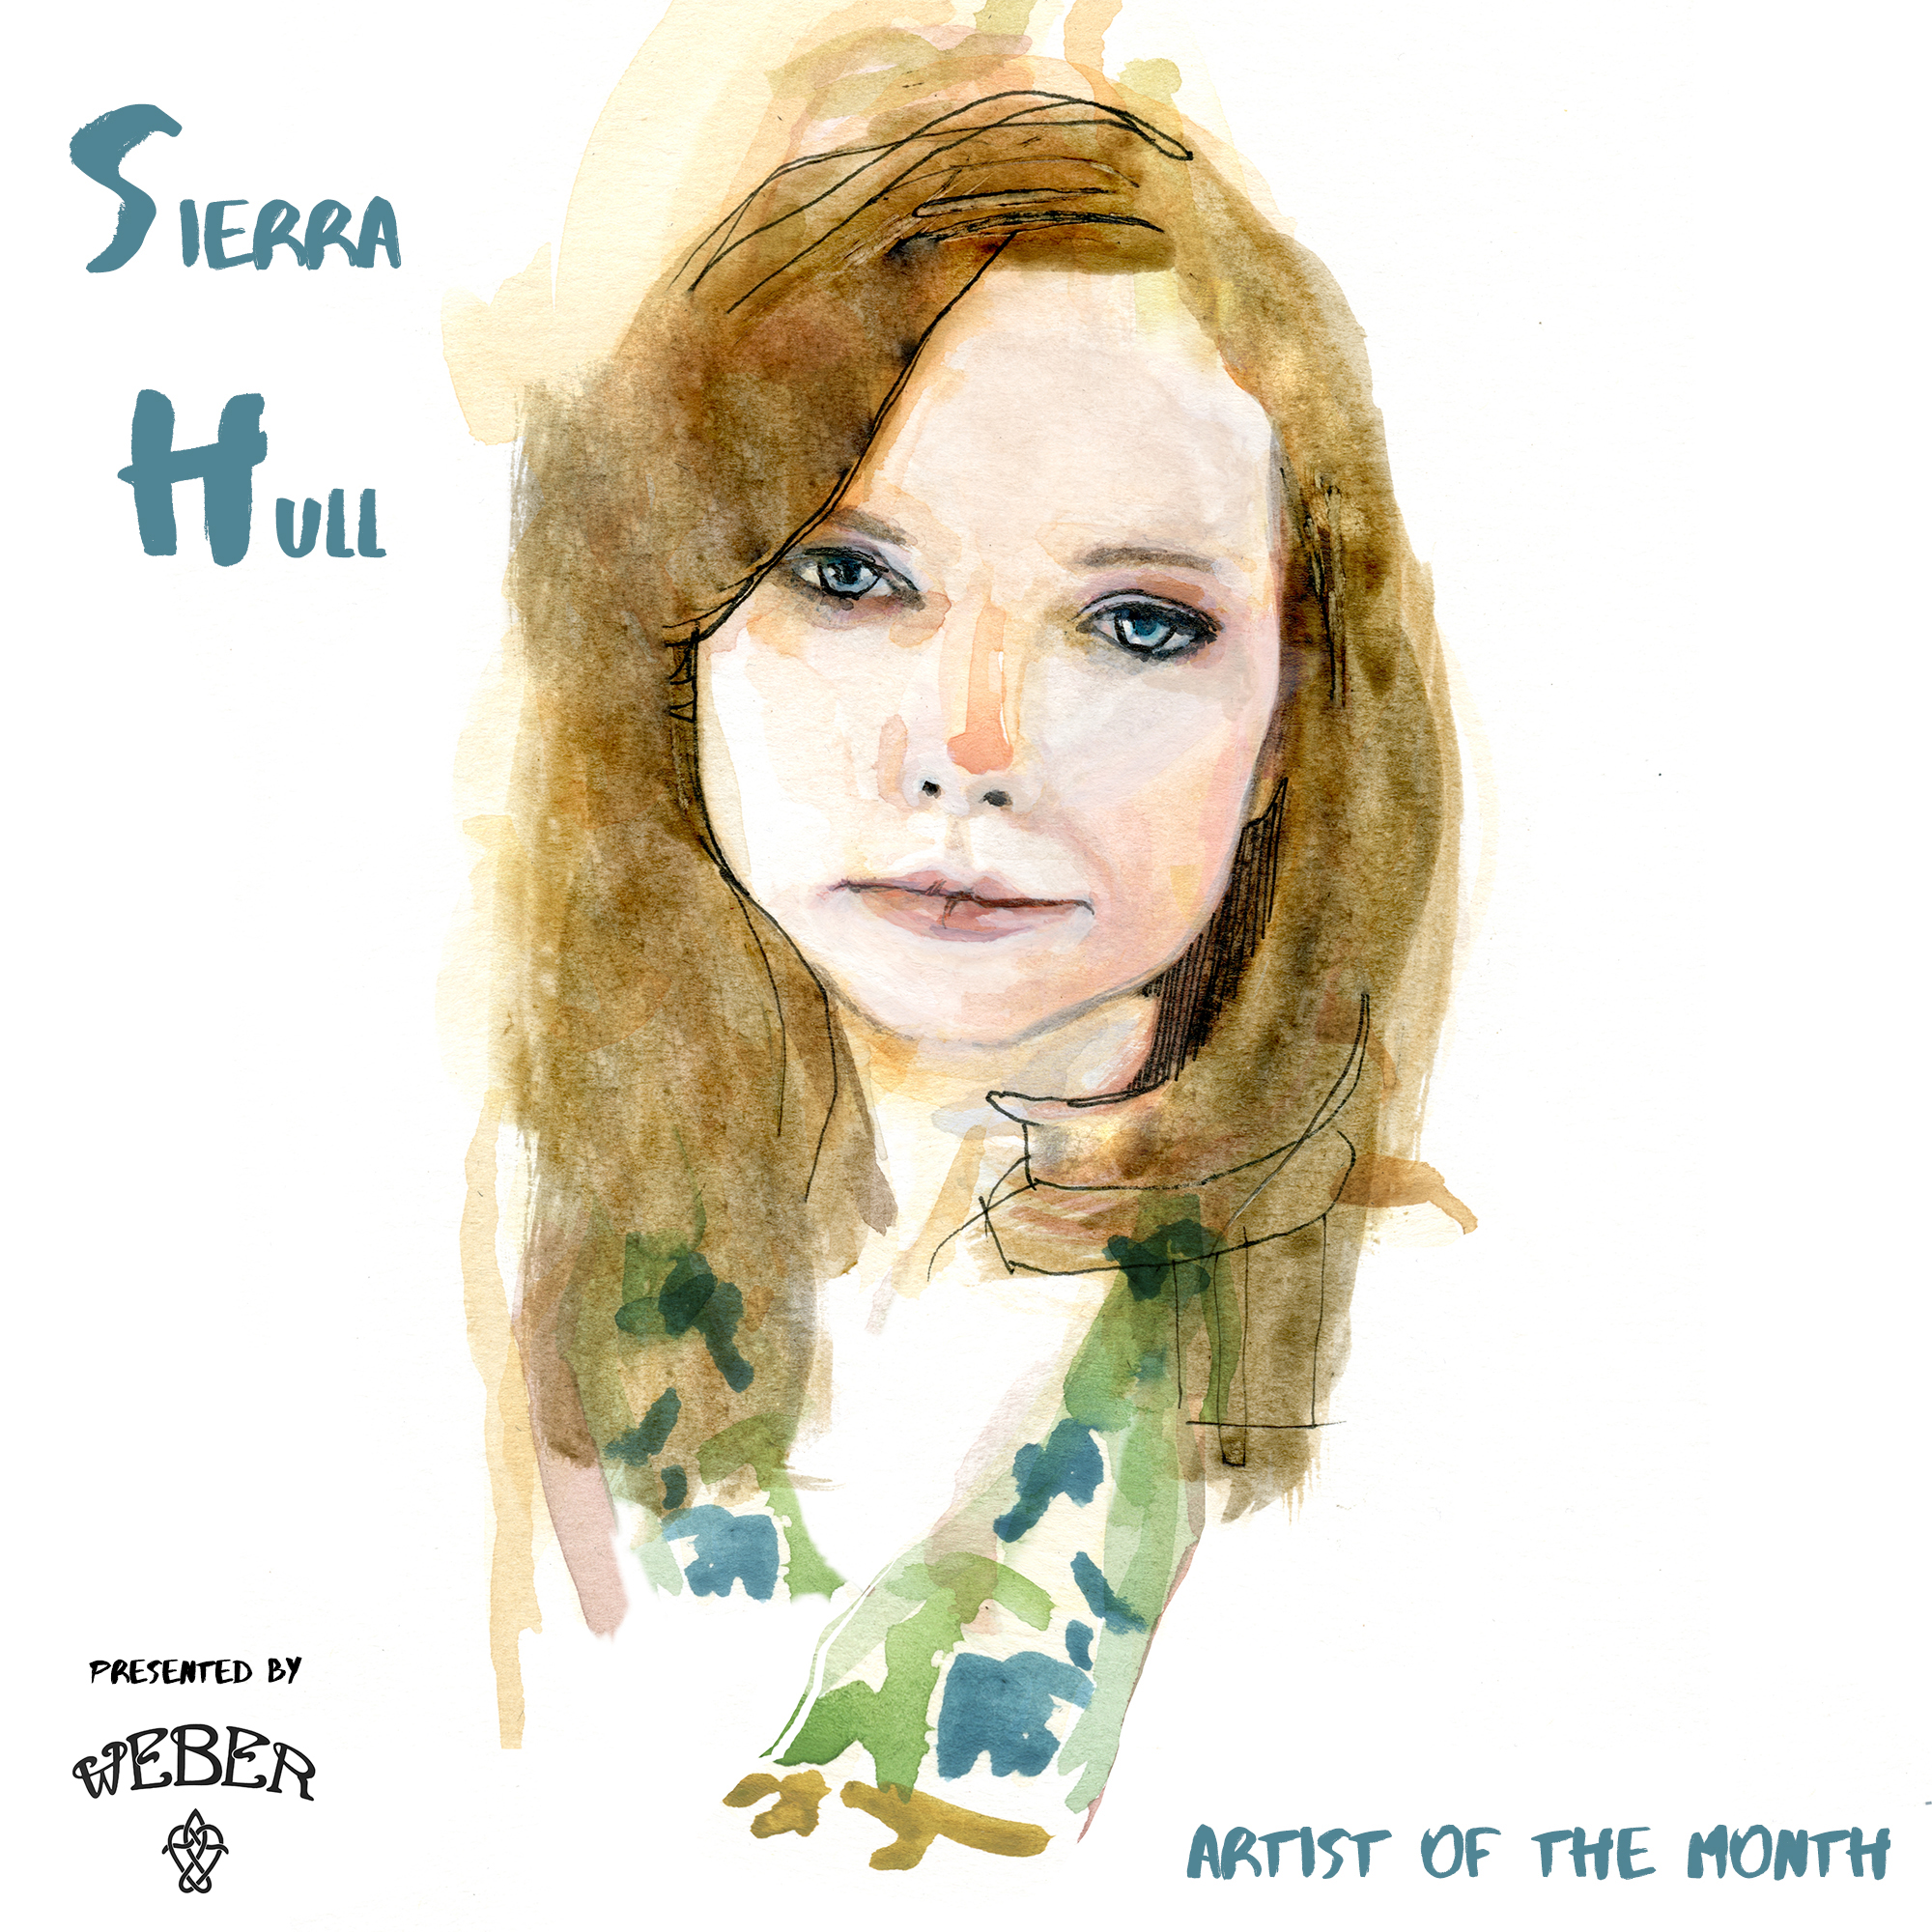 Sierra Hull and the Shortest Way Home